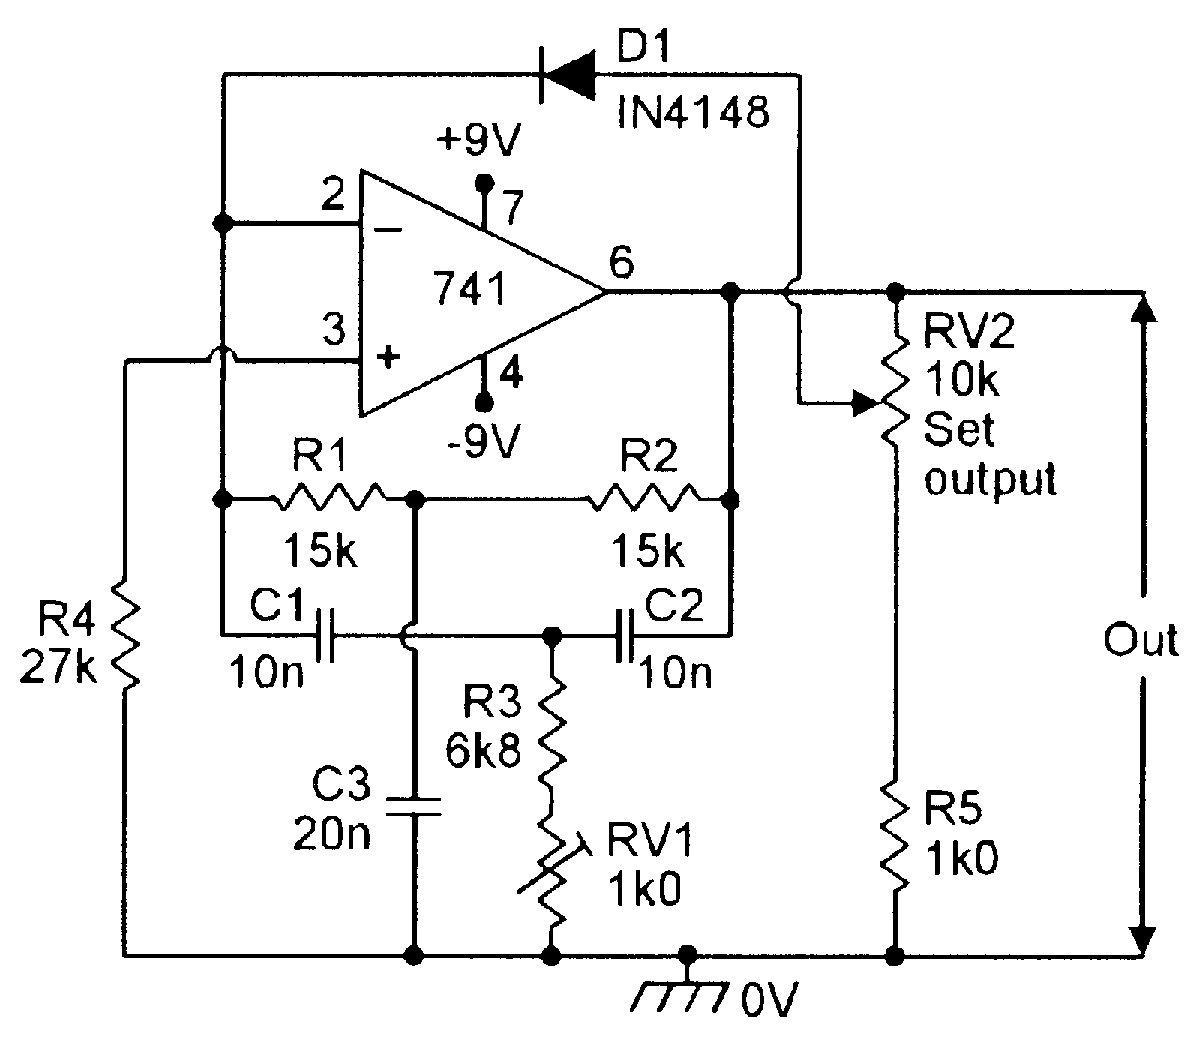 Op amp cookbook part 3 nuts volts magazine for the figure 8 diode regulated 1khz twin t oscillator pooptronica